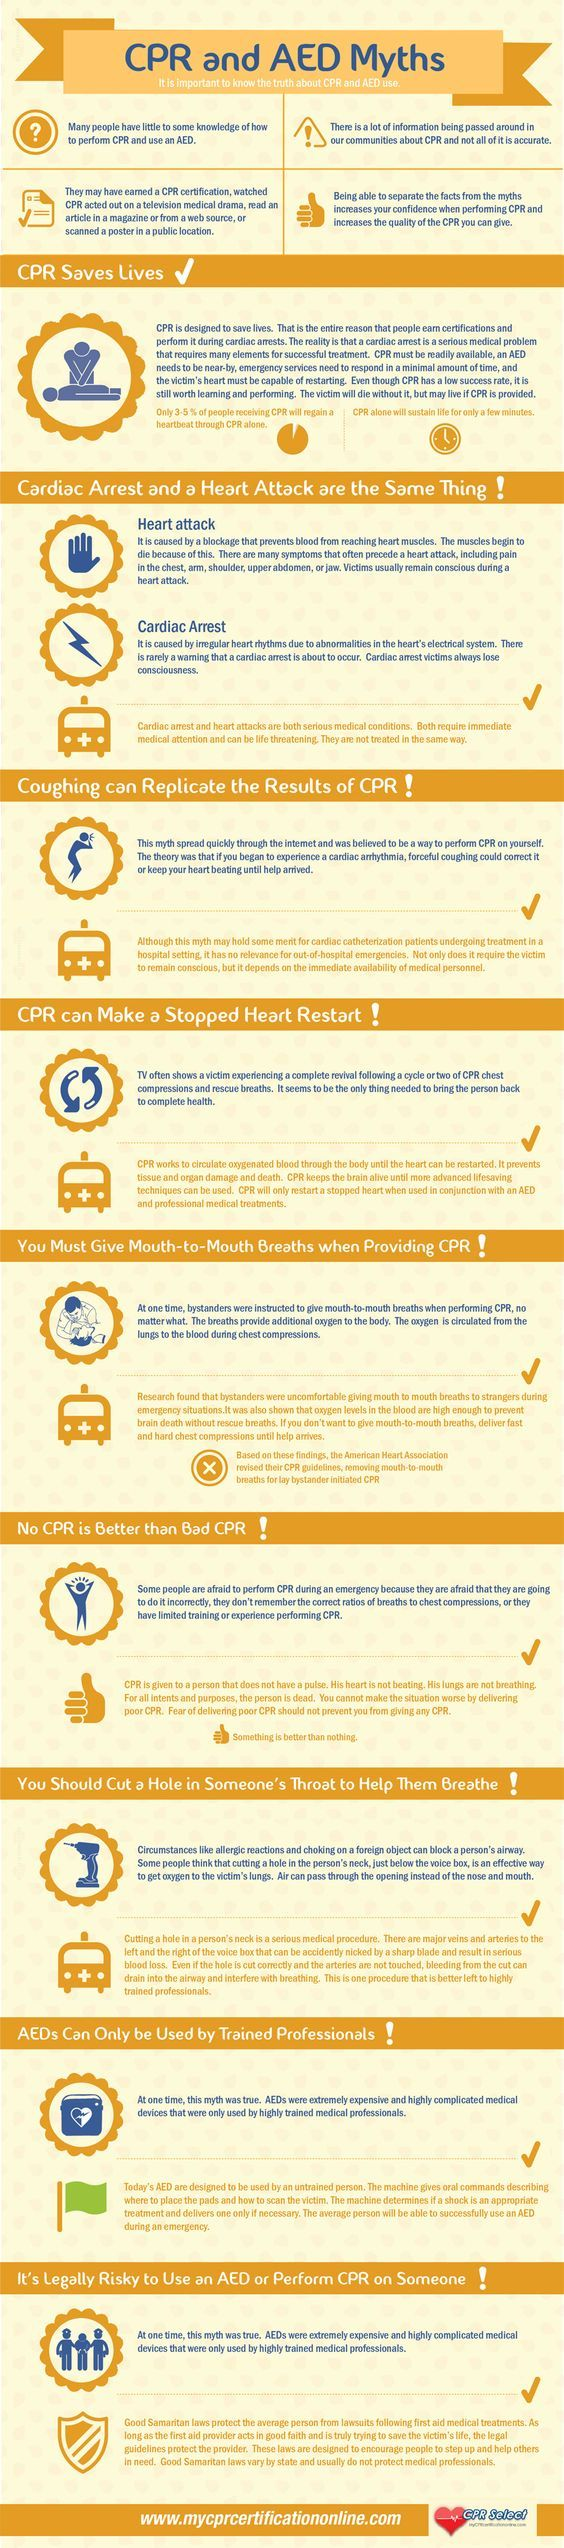 CPR and AED Myths. It is important to know the truth about CPR and AED use. Remember that in case of sudden cardiac arrest, you can use a portable defibrillator, which we explain here: http://insidefirstaid.com/personal/first-aid-kit/portable-automated-external-defibrillators-aed-cpr-protect-others-from-sudden-cardiac-arrest #first #aid #cpr #aed #heart #attack #cardiac #arrest